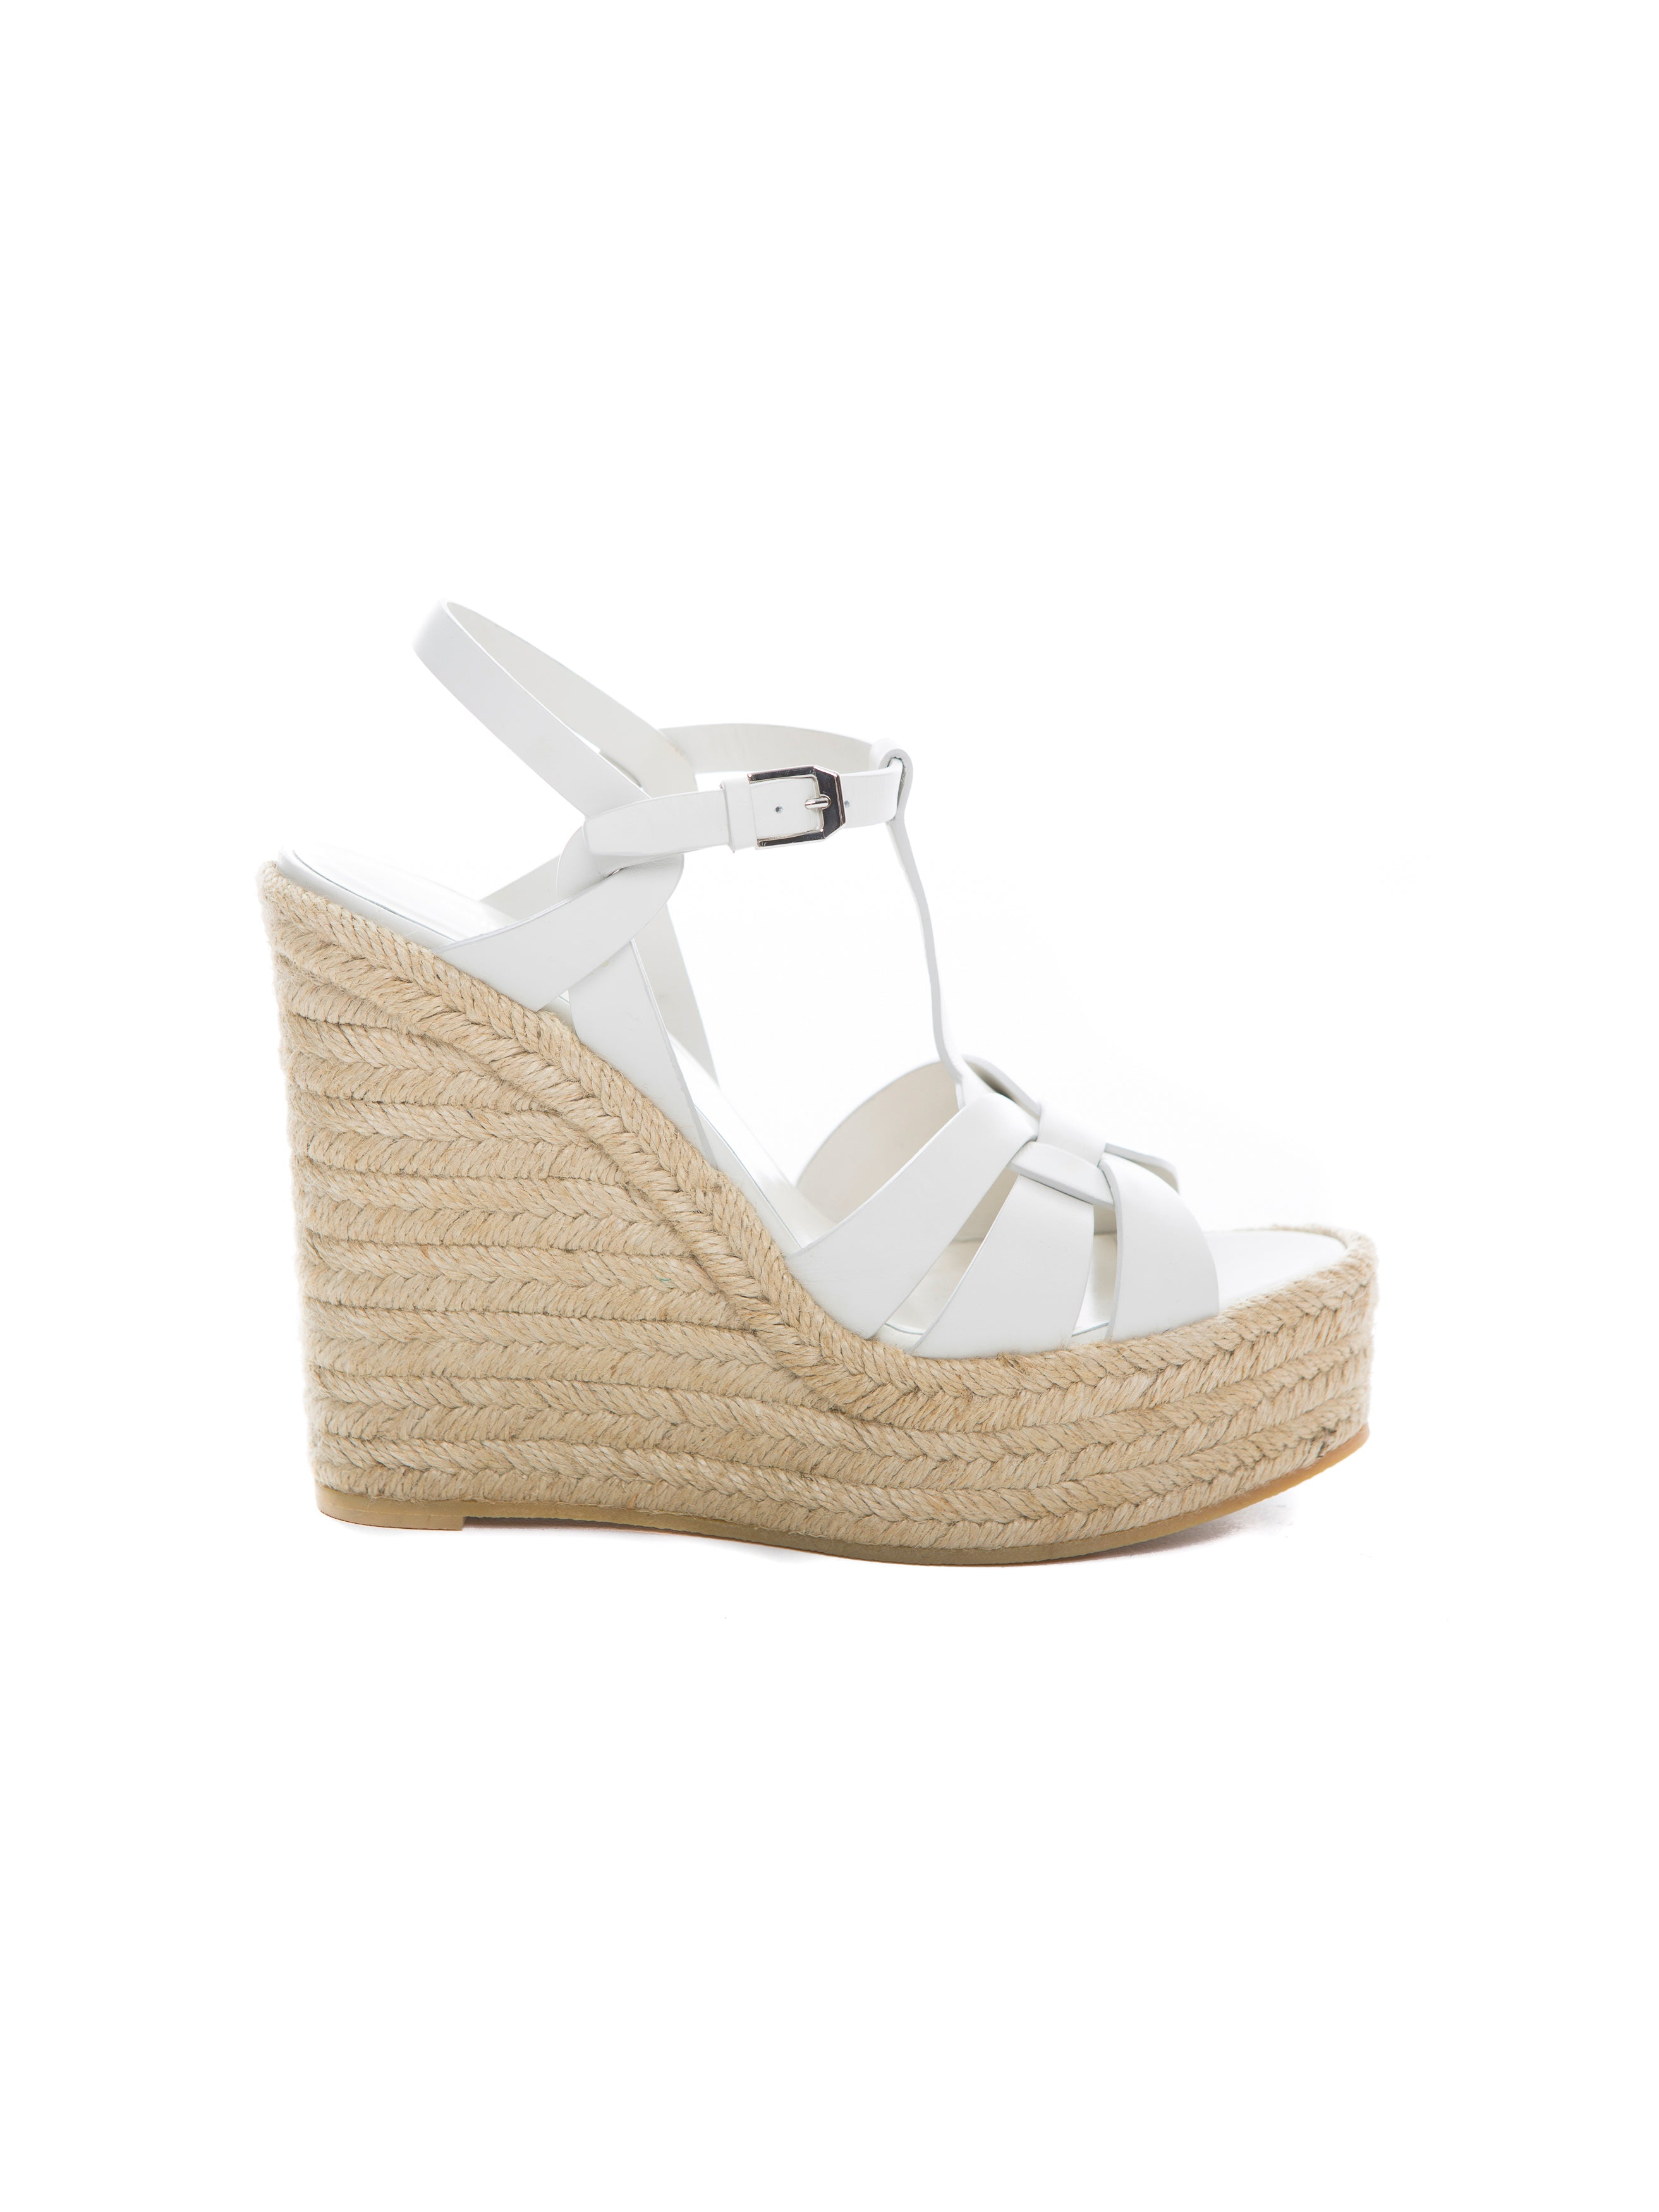 TRIBUTE ESPADRILLE WEDGE DOVE WHITE LEATHER